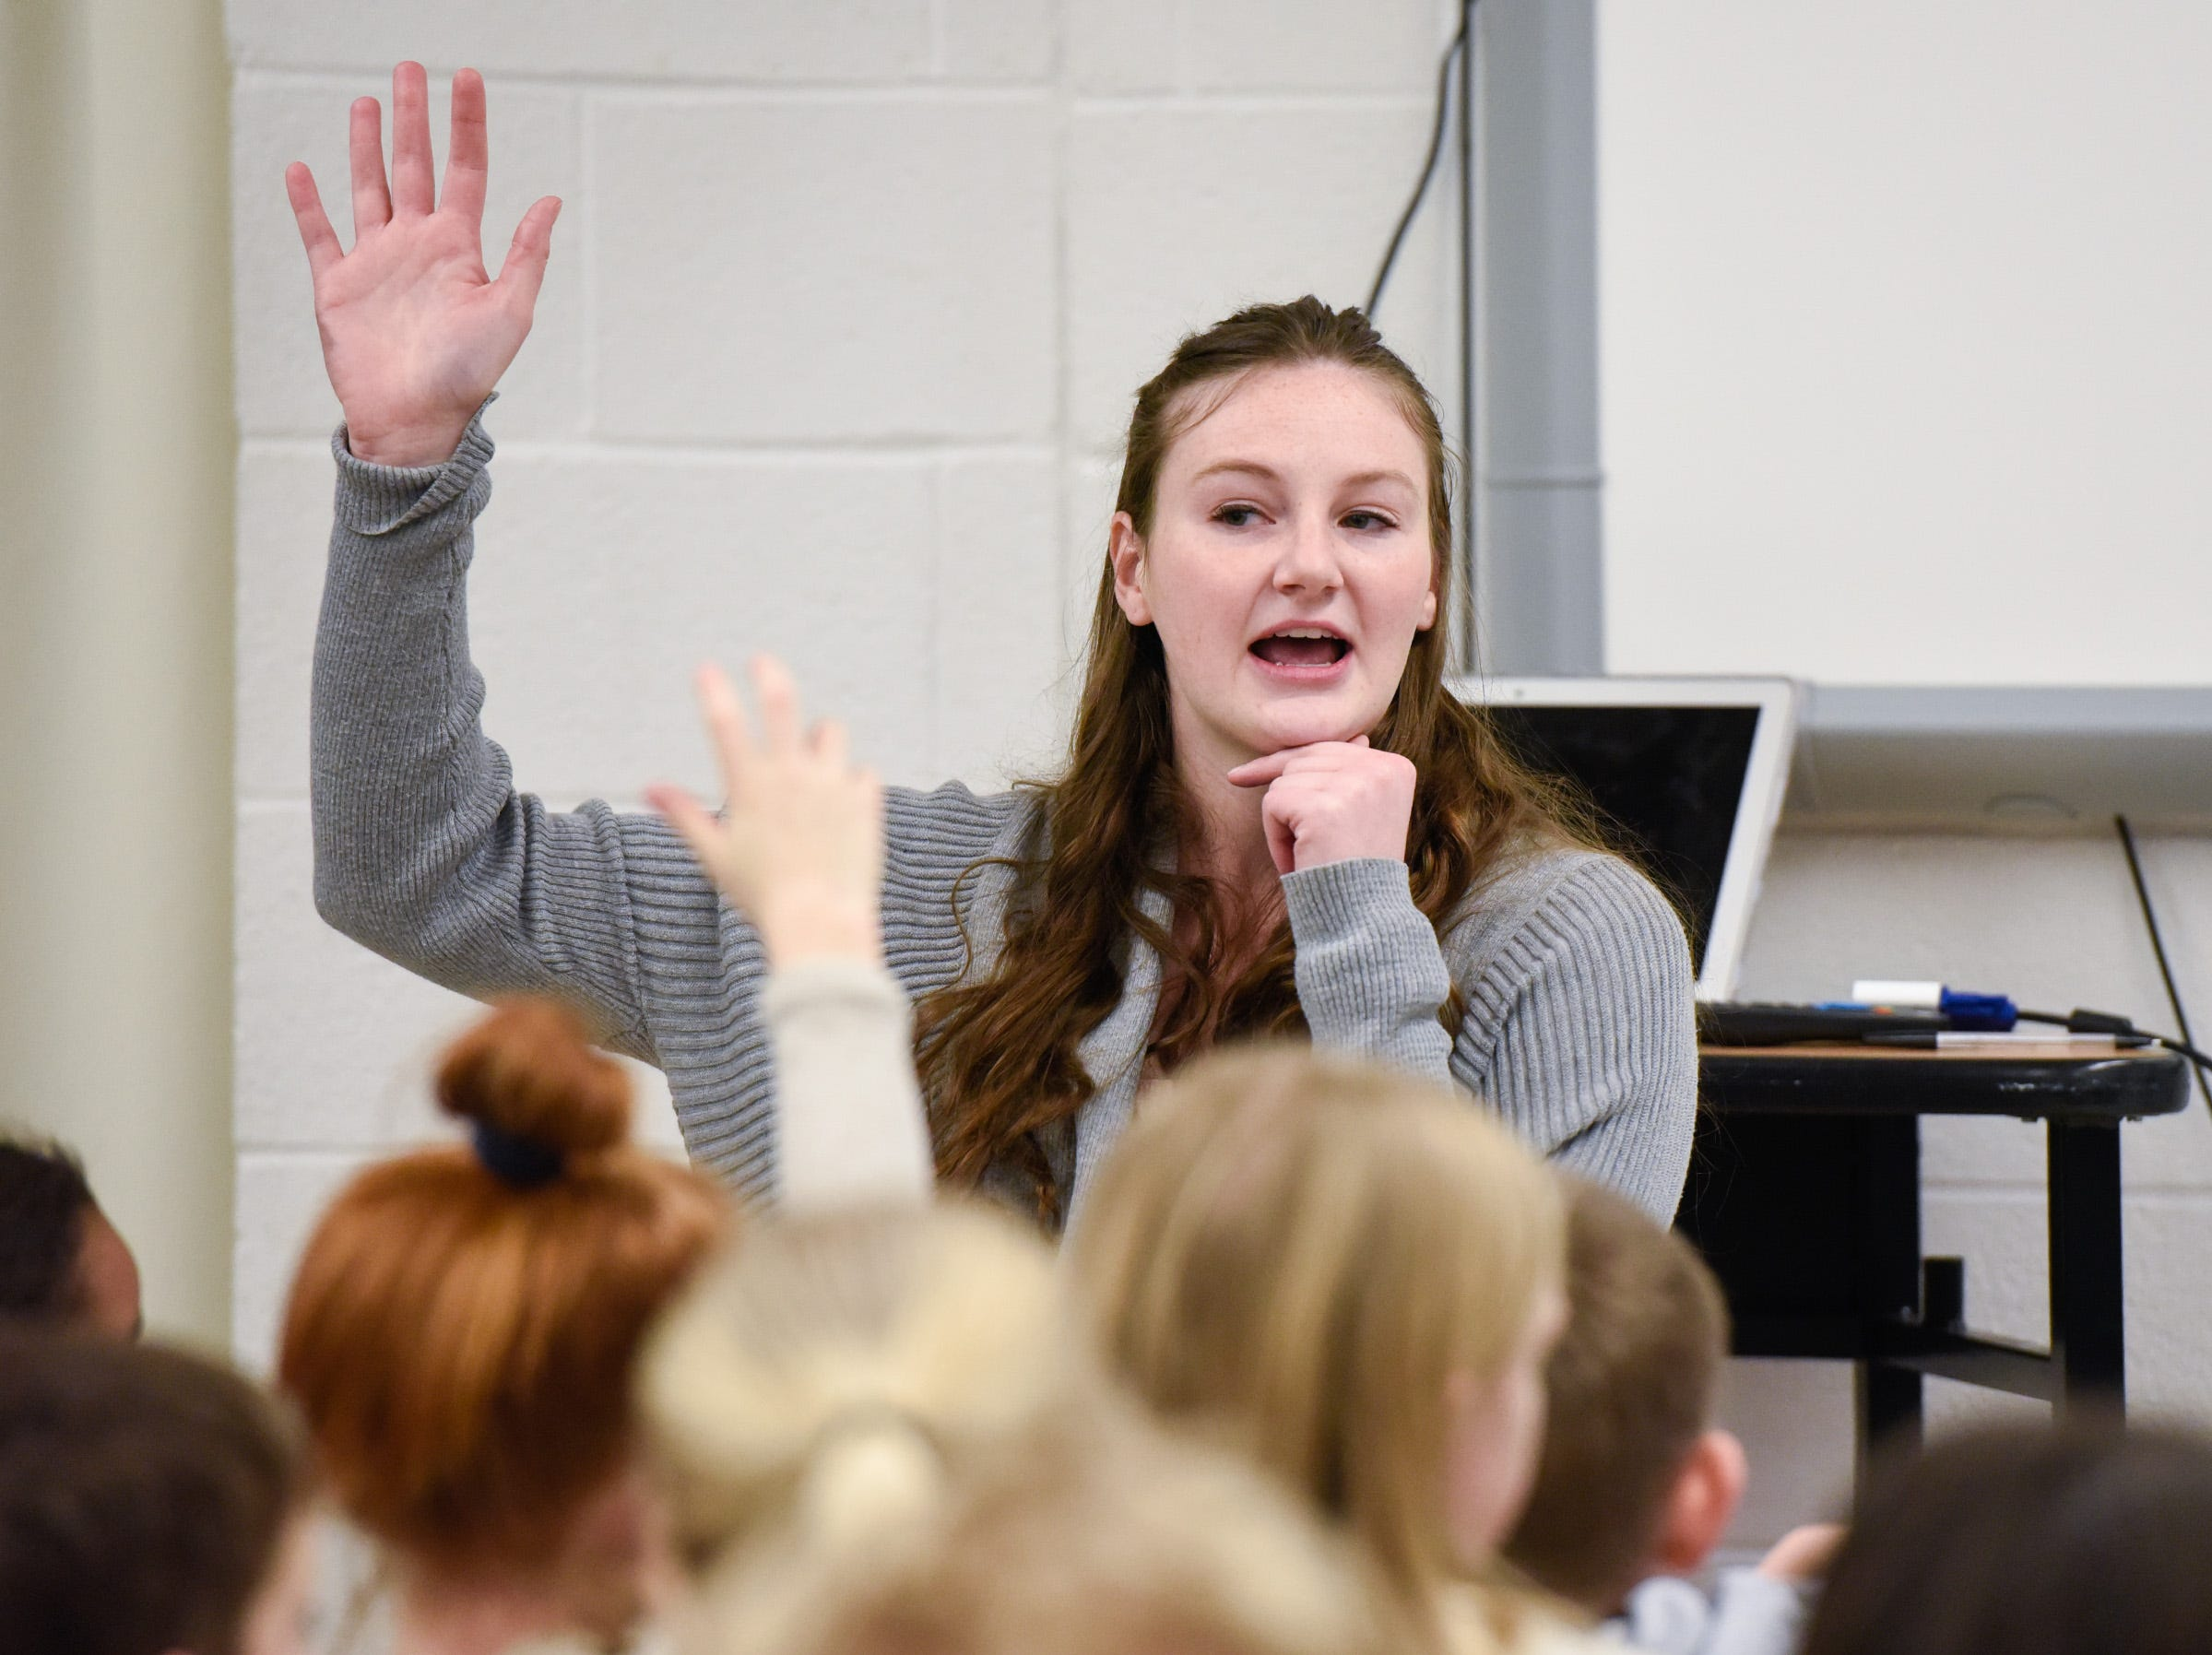 Teacher Emily Young answers students questions in their new classroom area Tuesday, Jan. 15, after a fire damaged classrooms at Pleasantview Elementary School in Sauk Rapids.